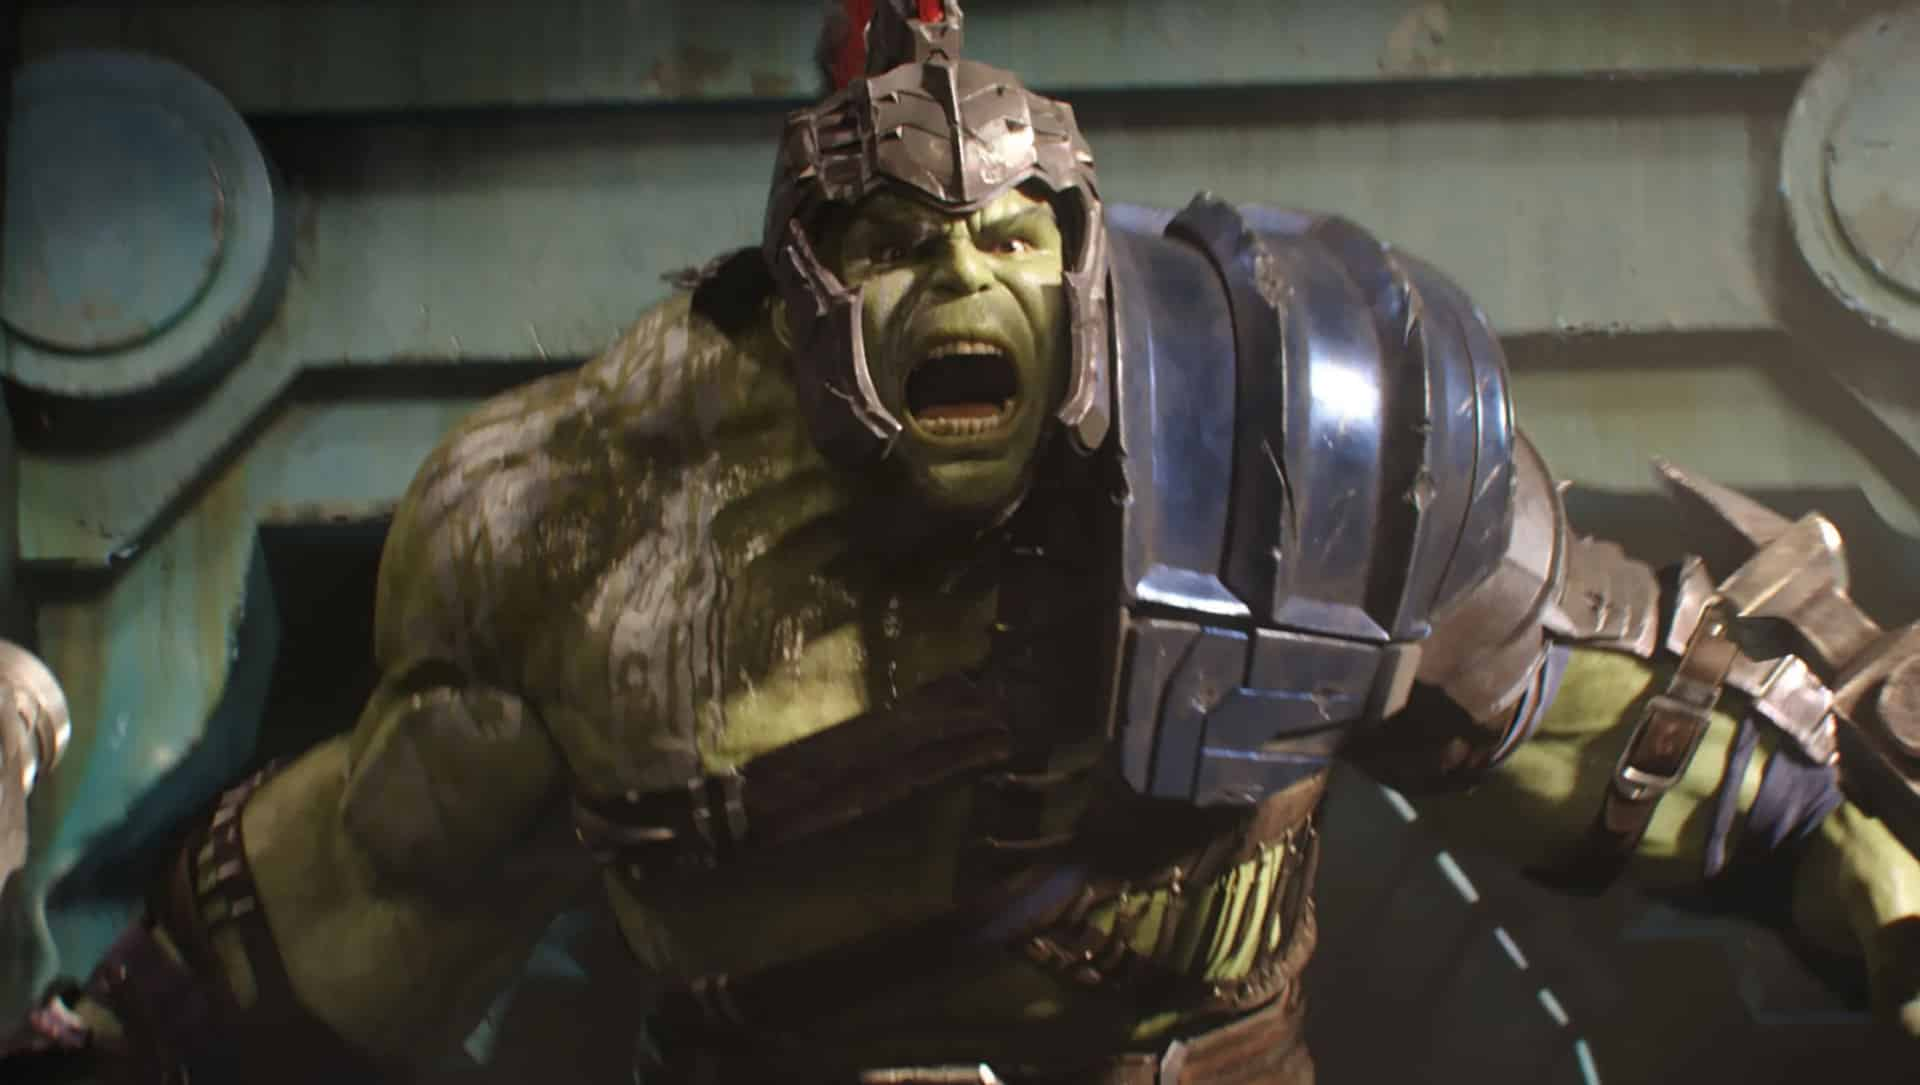 Marvel Cinematic Universe MCU no flawed characters story arcs like alcoholism, Demon in a Bottle, all perfect paragon heroes